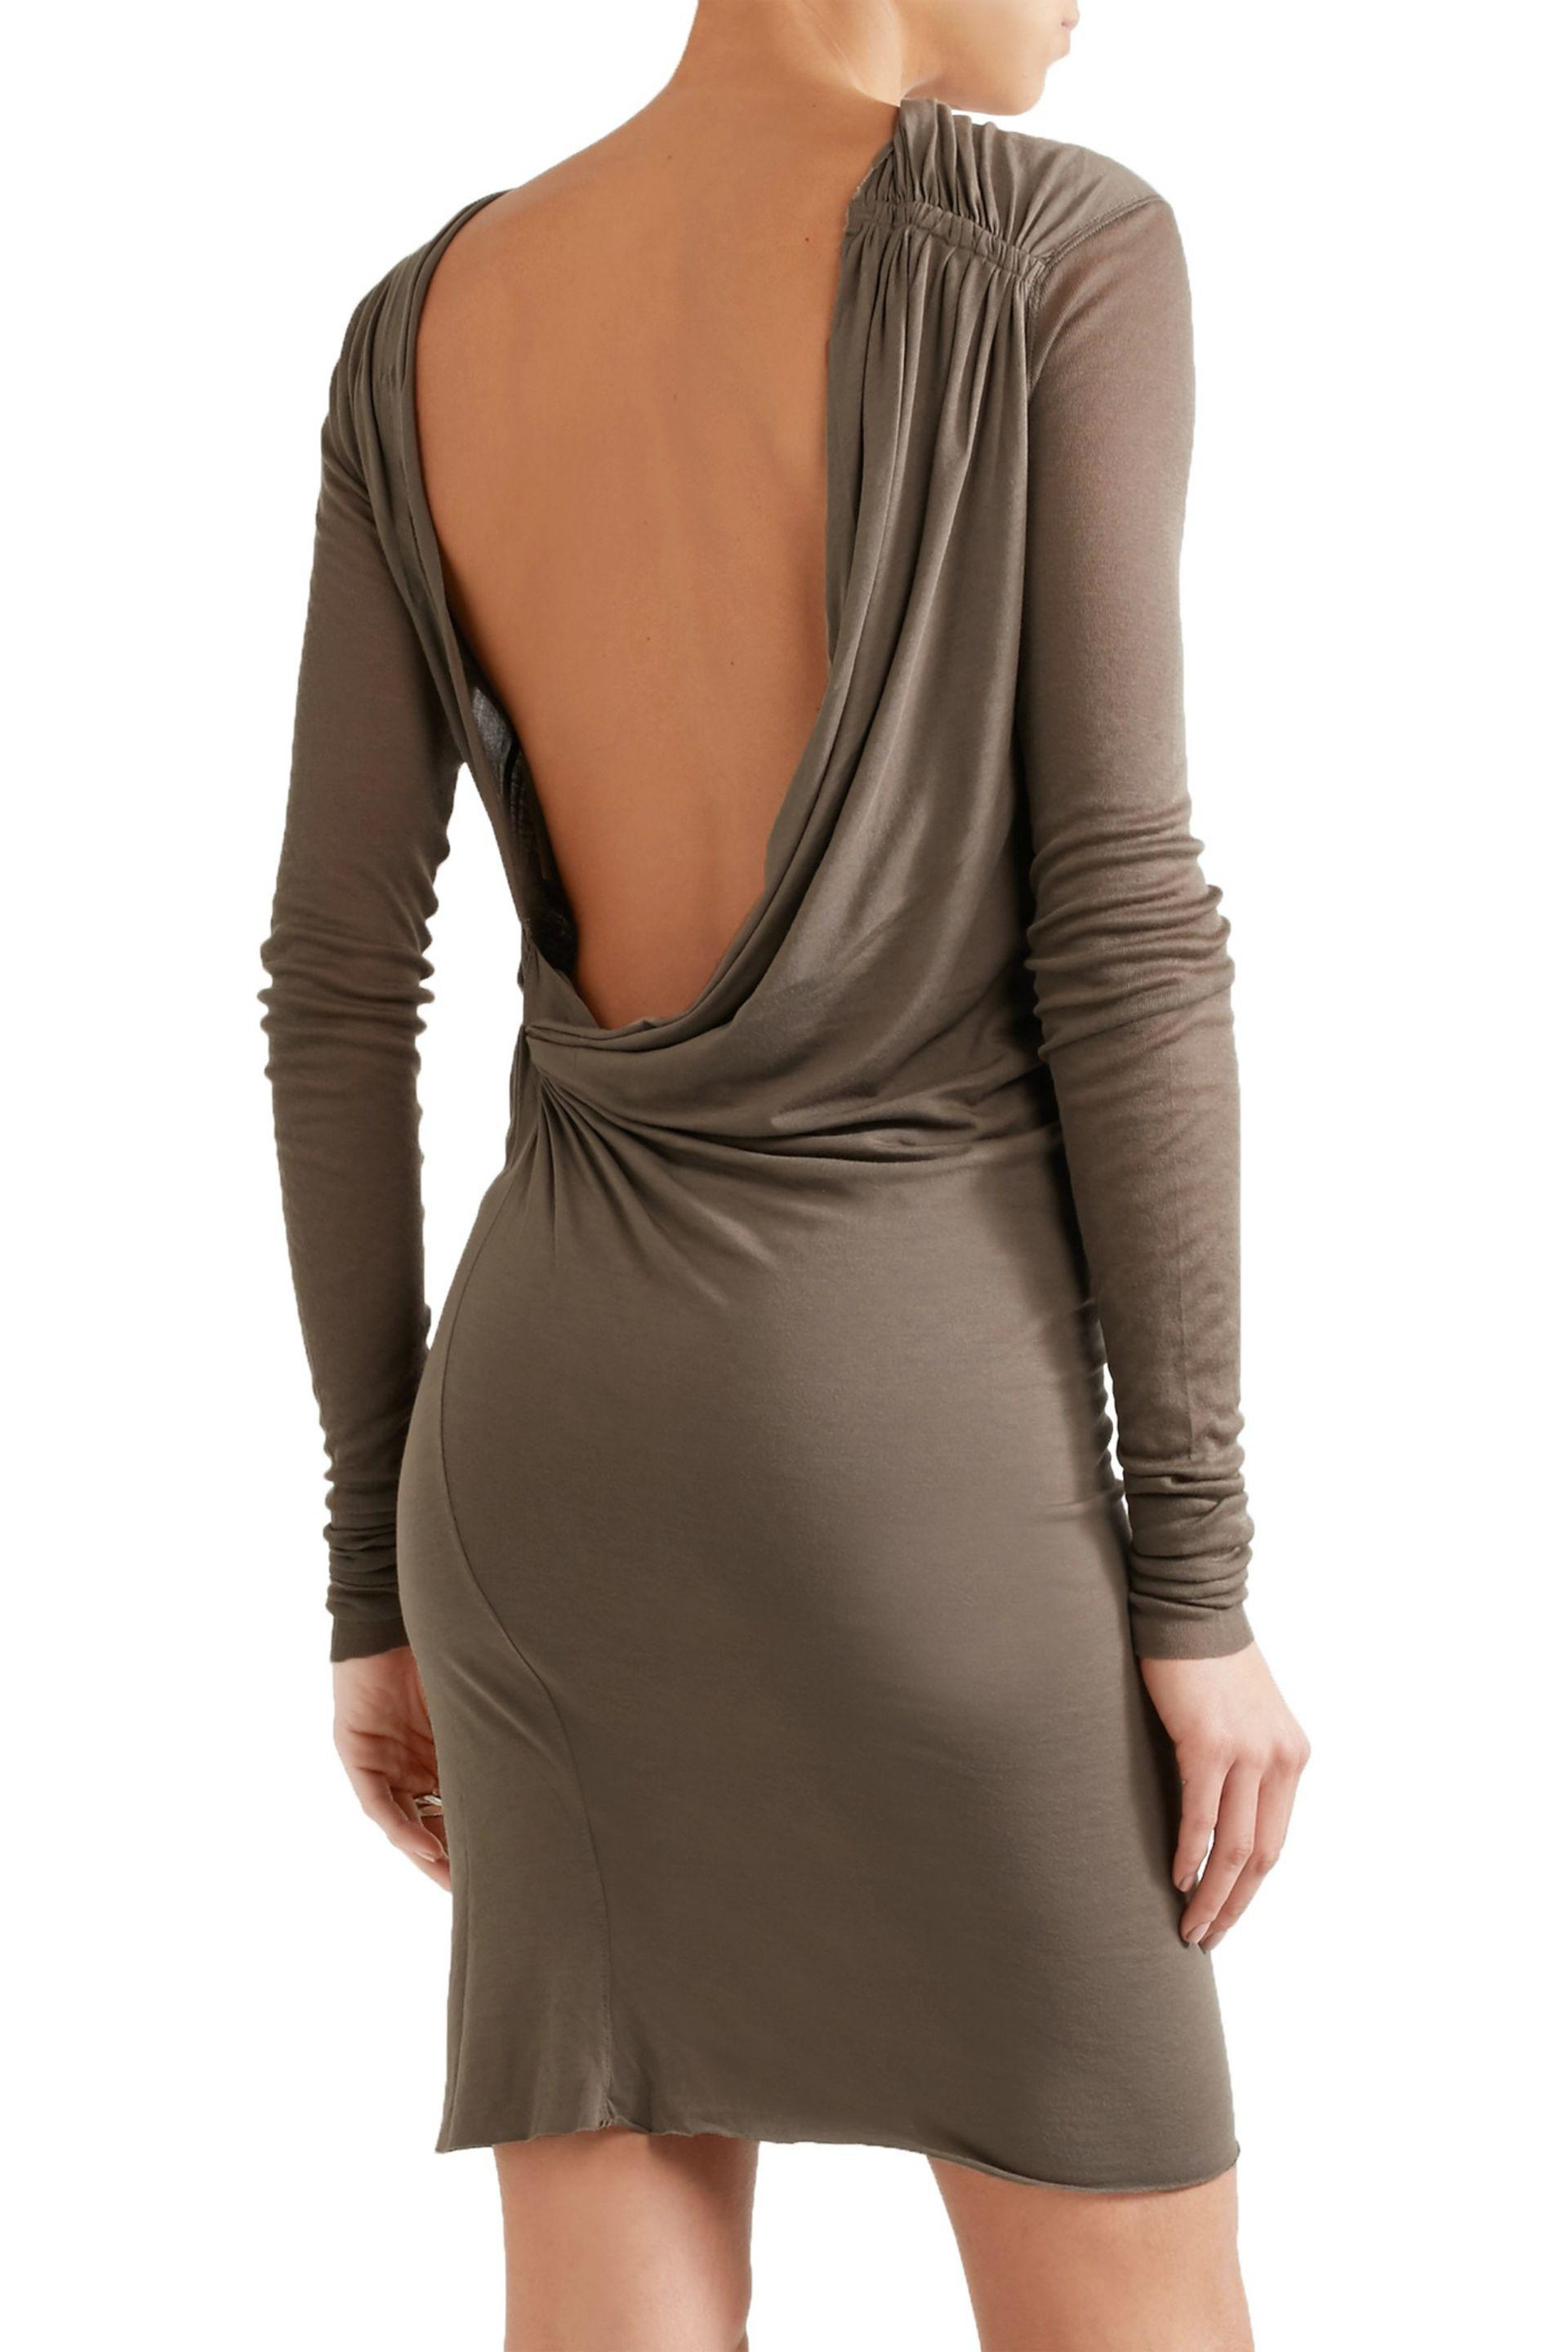 Rick Owens Woman Draped Open-back Stretch-jersey Mini Dress Taupe Size 48 Rick Owens YBBVK